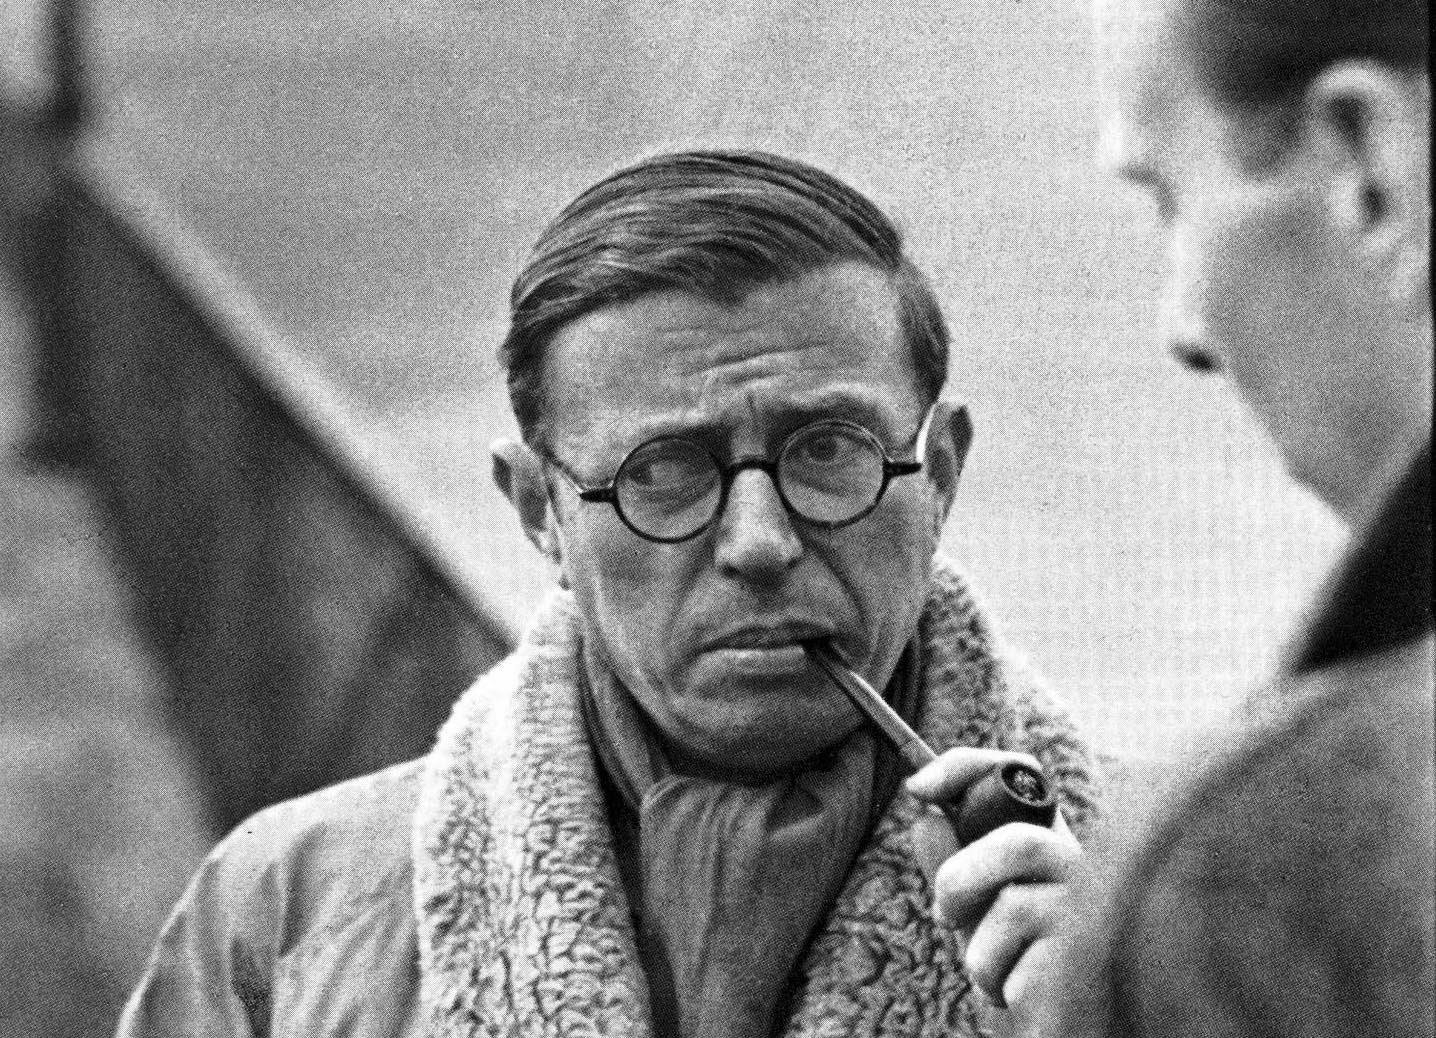 the influence of john paul sartre in the 20th century and his concept of existentialism Jean-paul charles aymard sartre (21 june 1905 -- 15 april 1980) was a french existentialist philosopher, playwright, novelist, screenwriter, political activist, biographer, and literary critic.